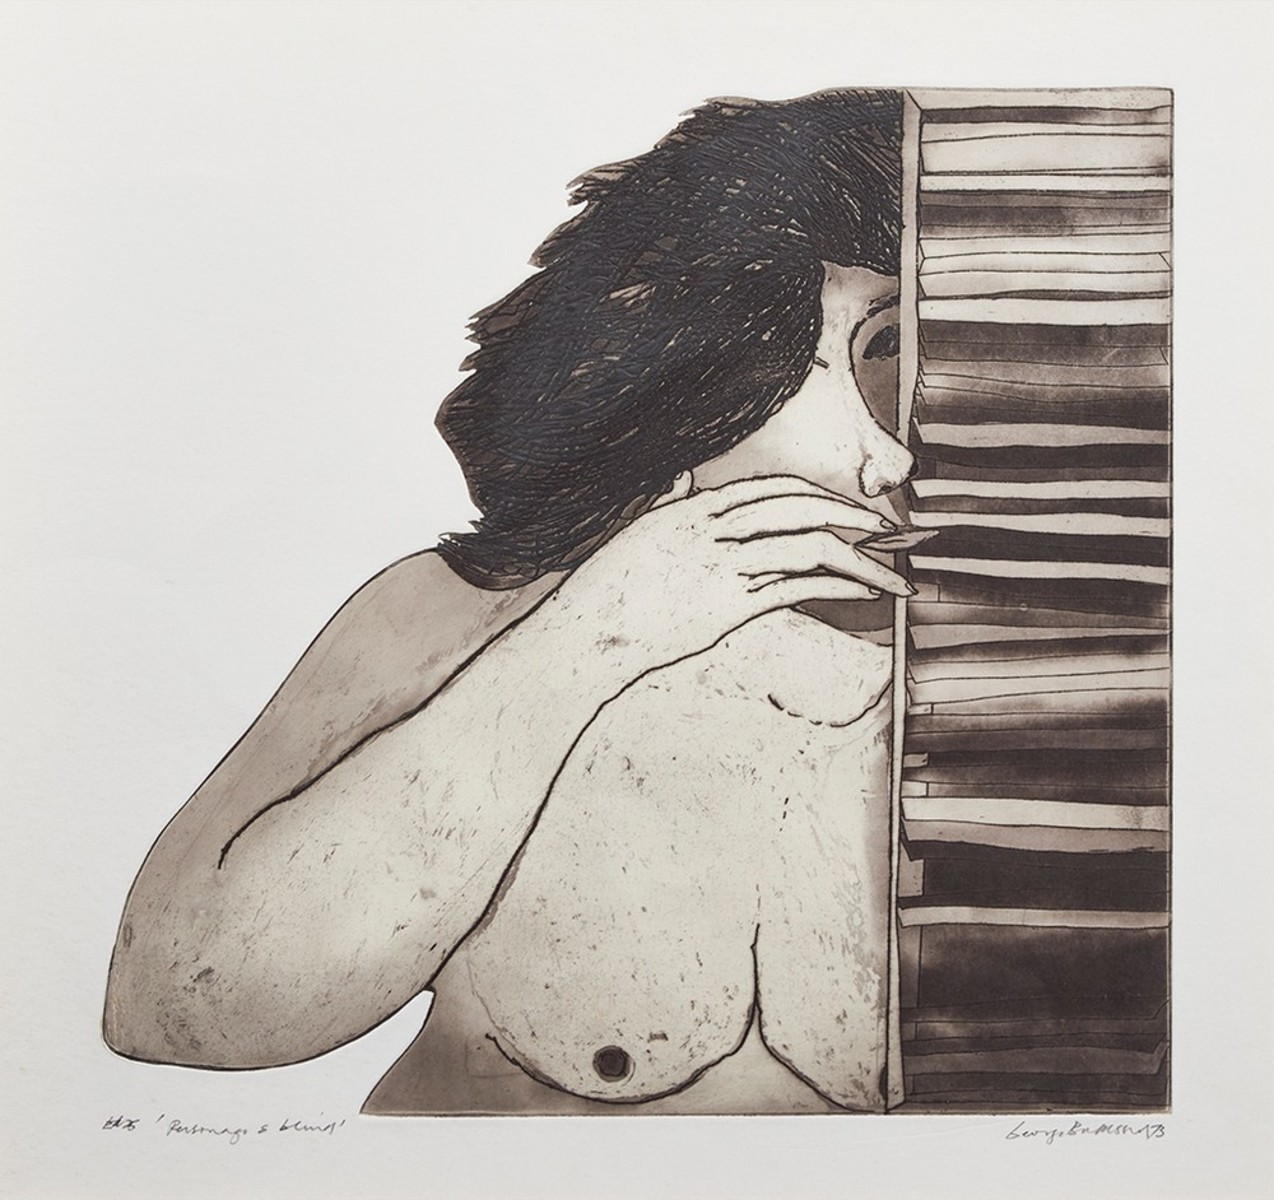 Personage and Blinds, 1973